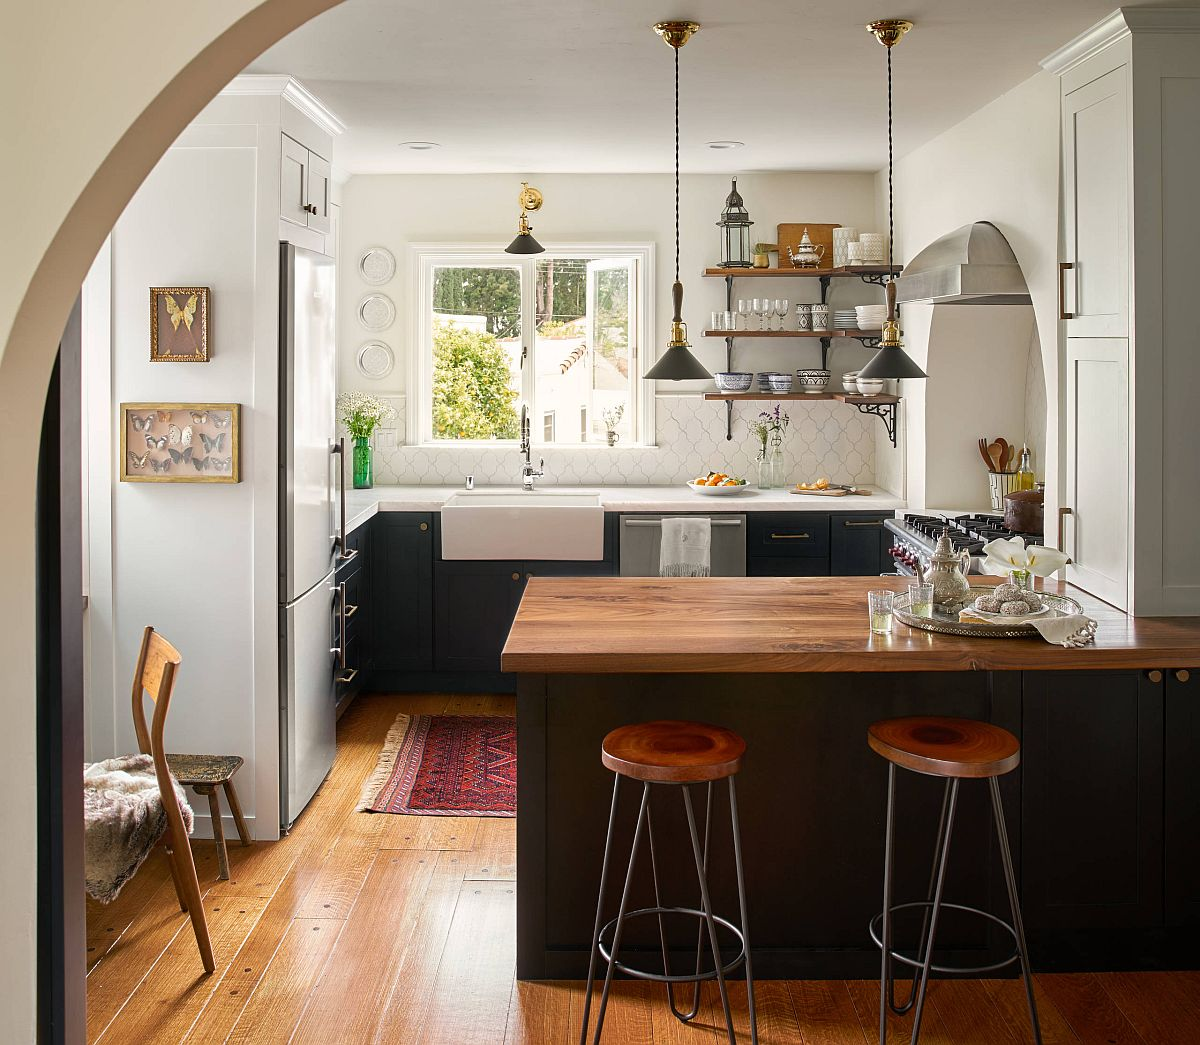 Finding the right stain of wood for your kitchen wooden floor